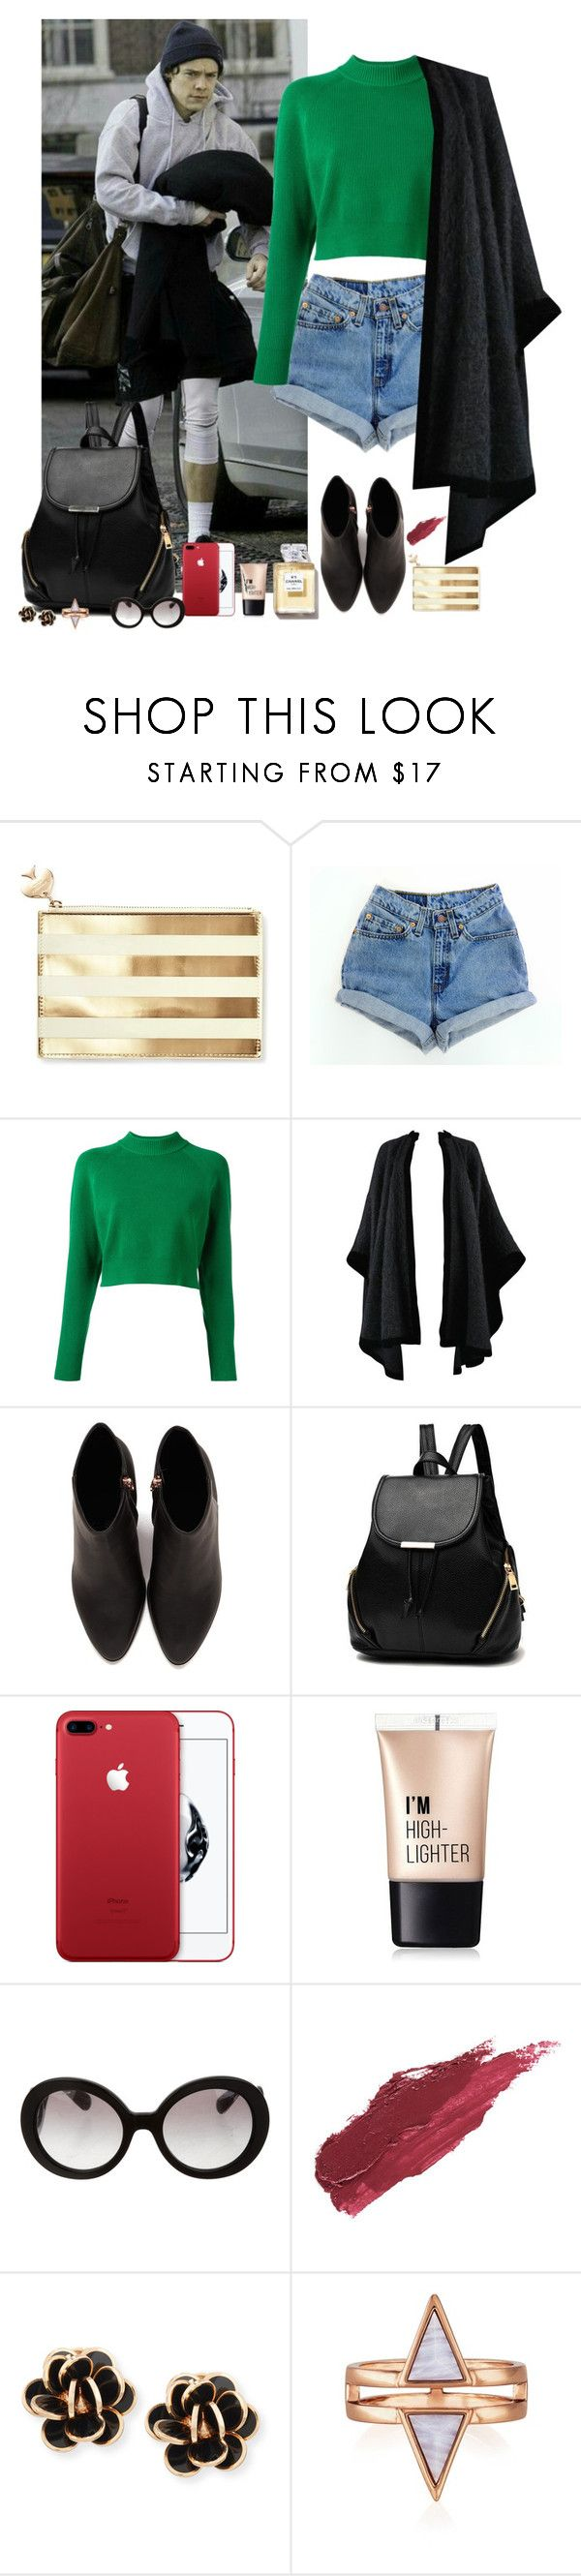 """""""Harry Styles #141"""" by ambere3love34 ❤ liked on Polyvore featuring Kate Spade, GET LOST, Levi's, DKNY, Yves Saint Laurent, Alexander Wang, Charlotte Russe, Prada, Lily Lolo and Chantecler"""